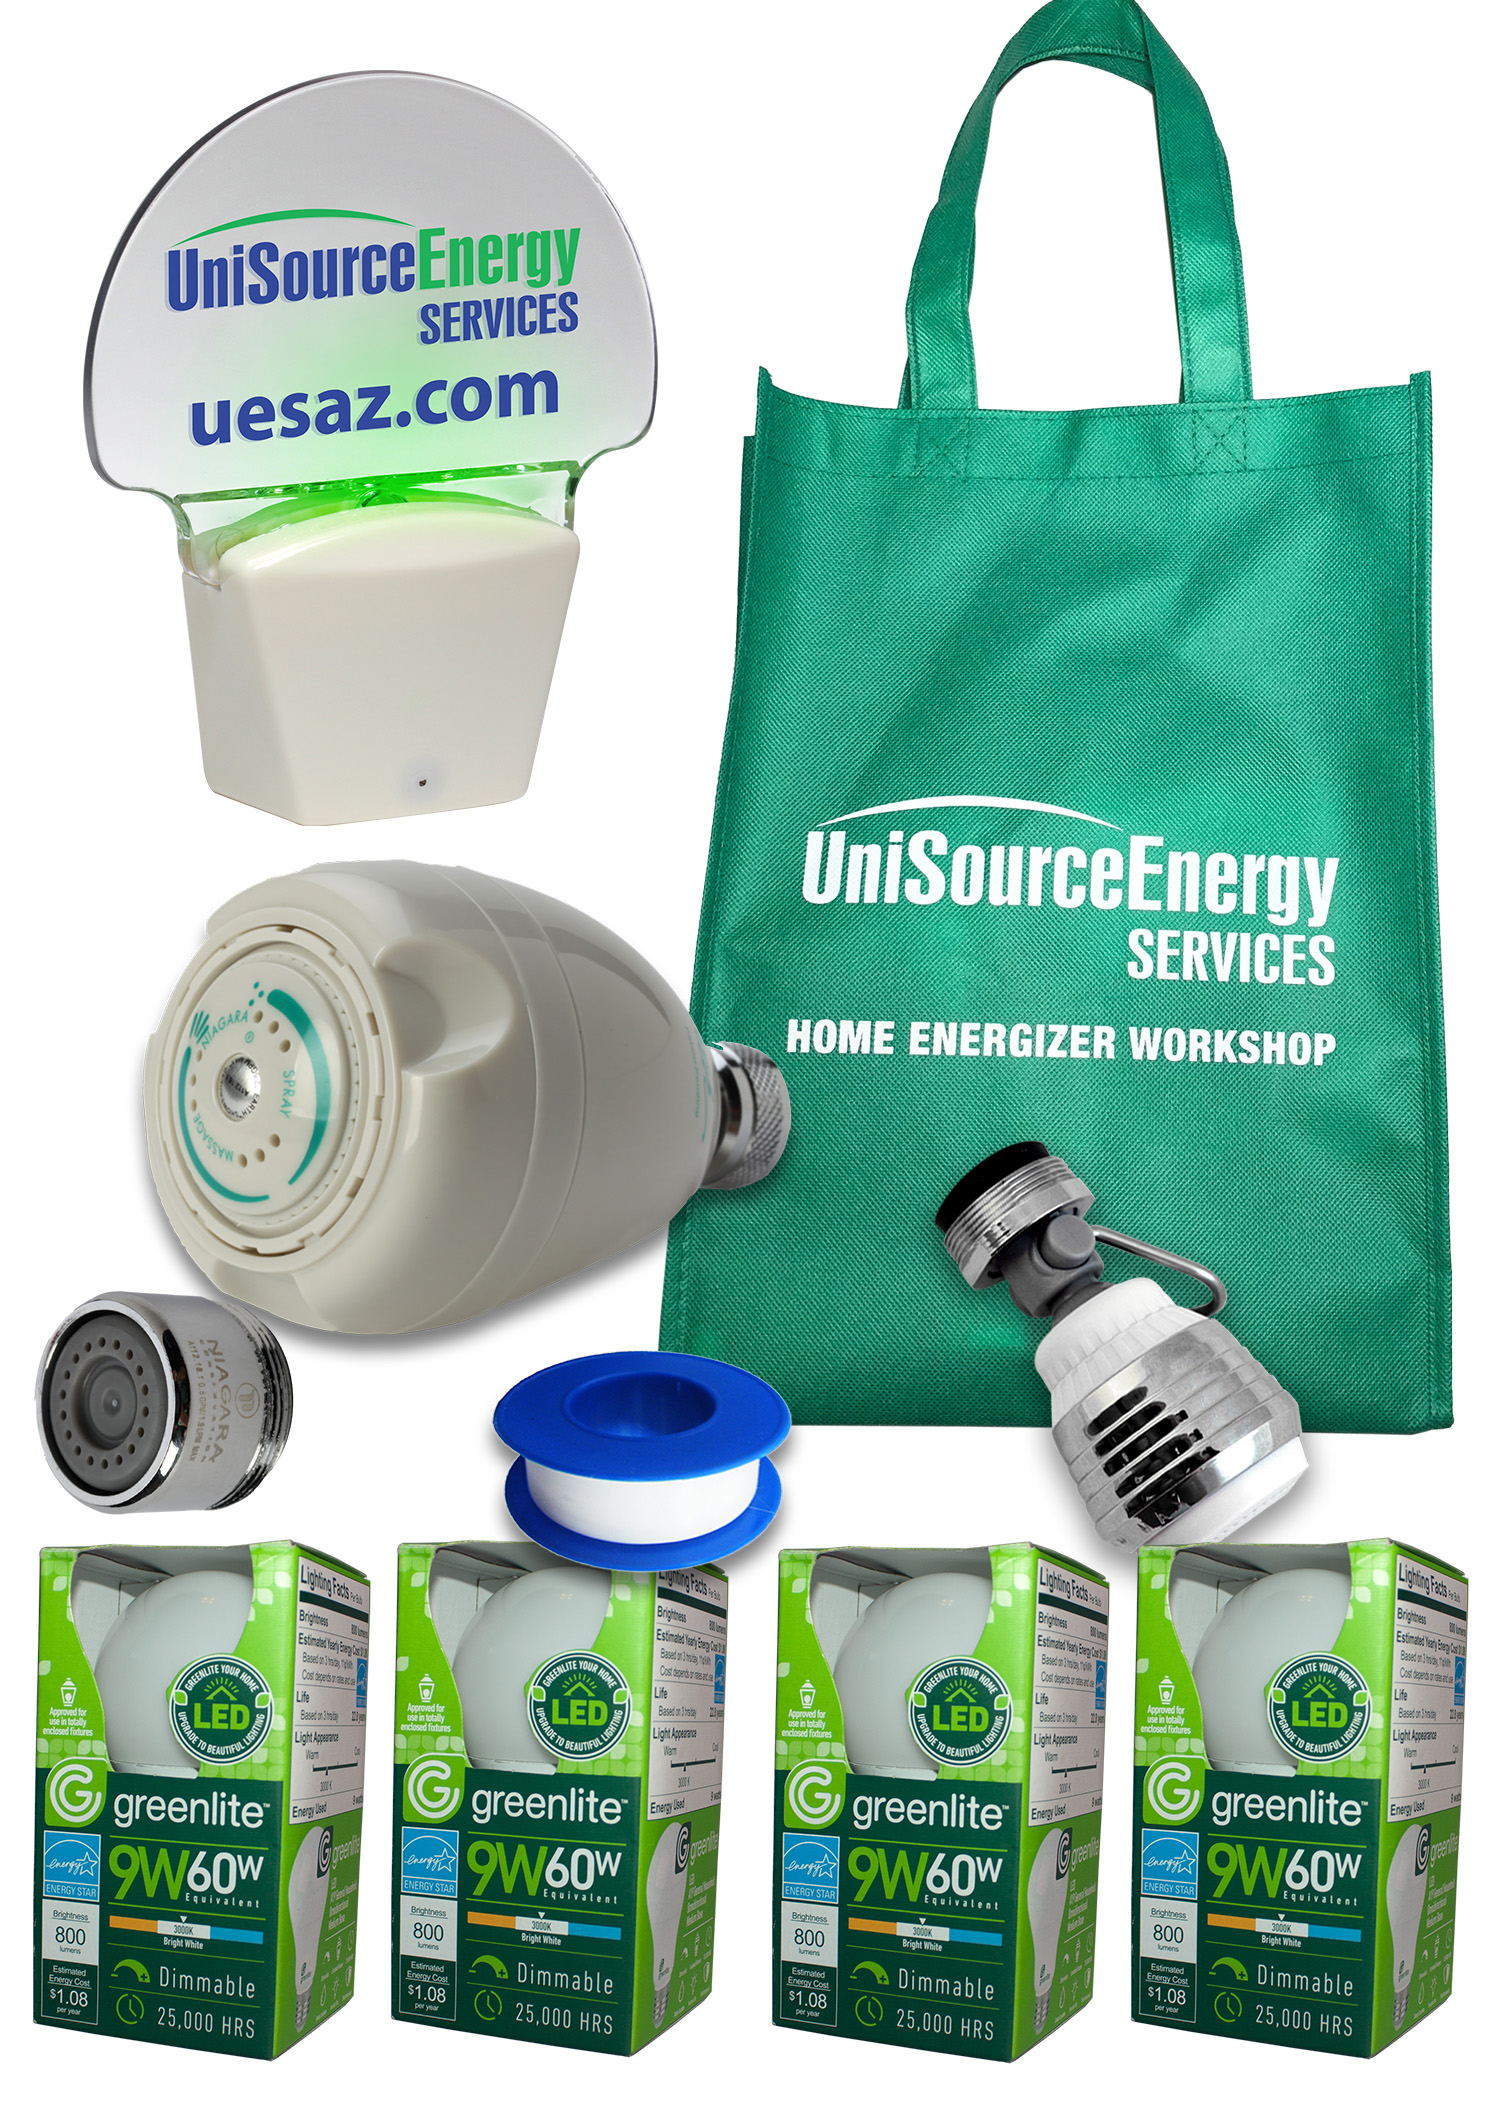 Each participant receives an Energy Efficiency Kit.